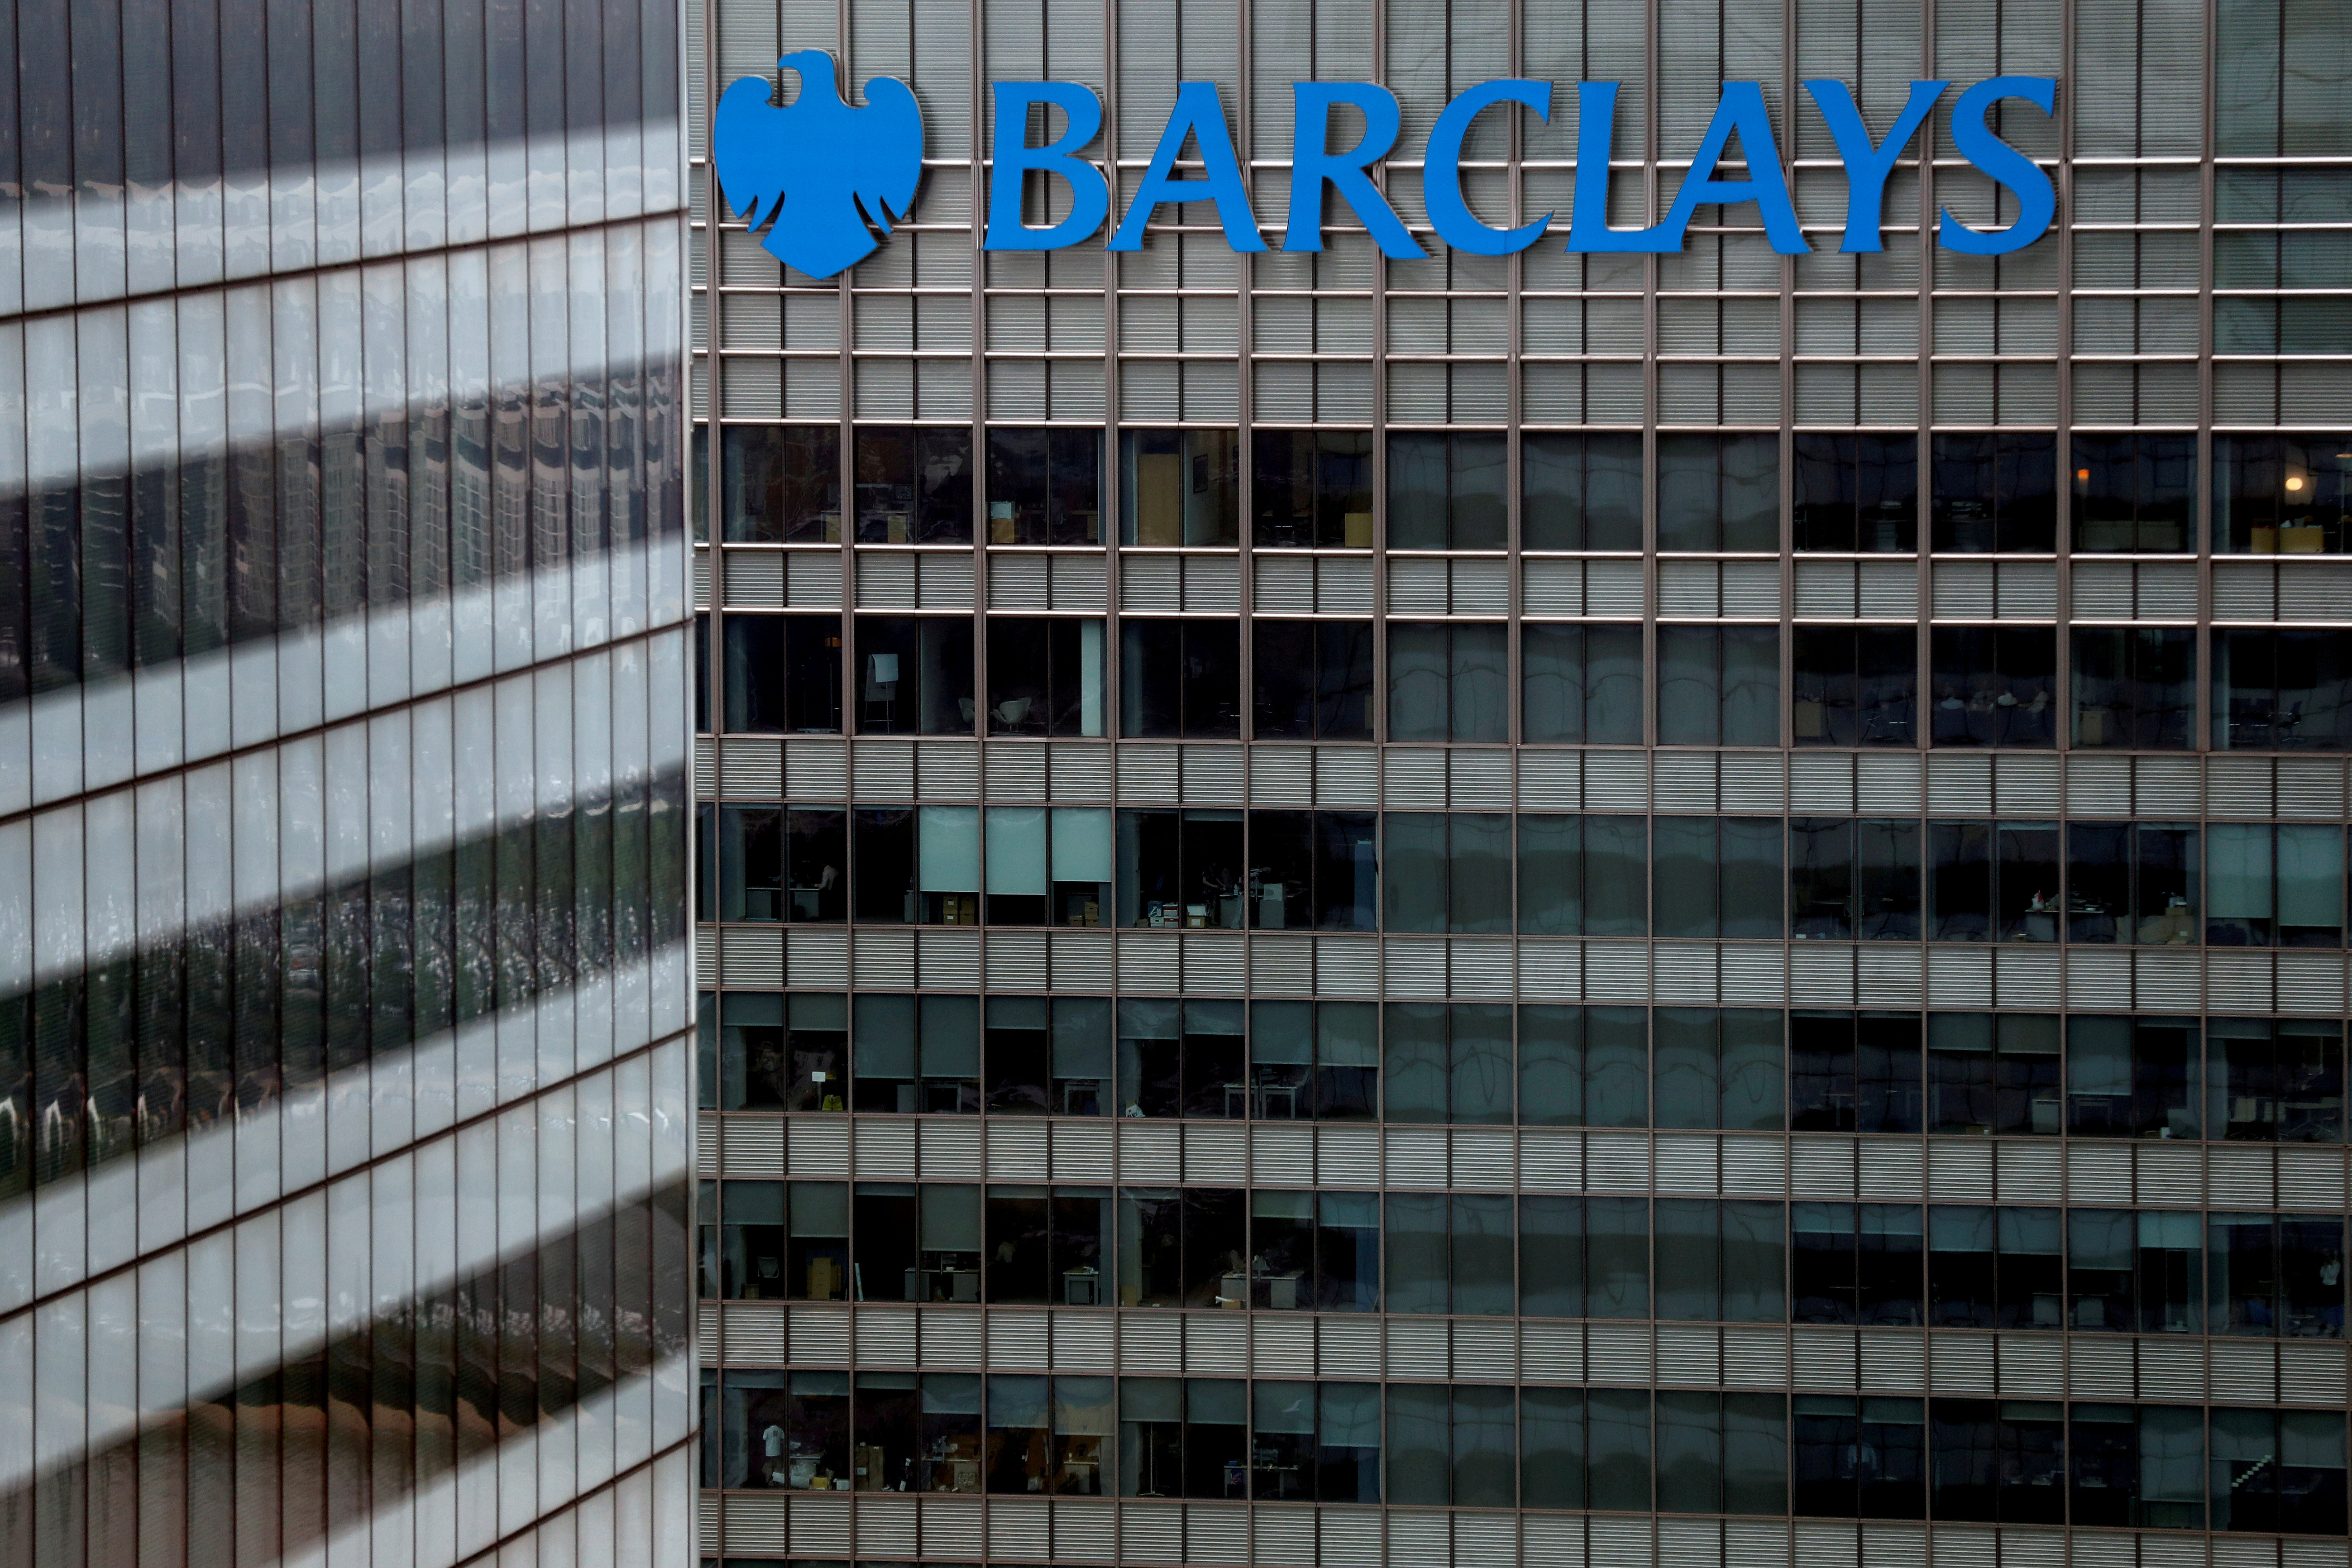 A Barclays bank building is seen at Canary Wharf in London, Britain May 17, 2017. REUTERS/Stefan Wermuth/File Photo